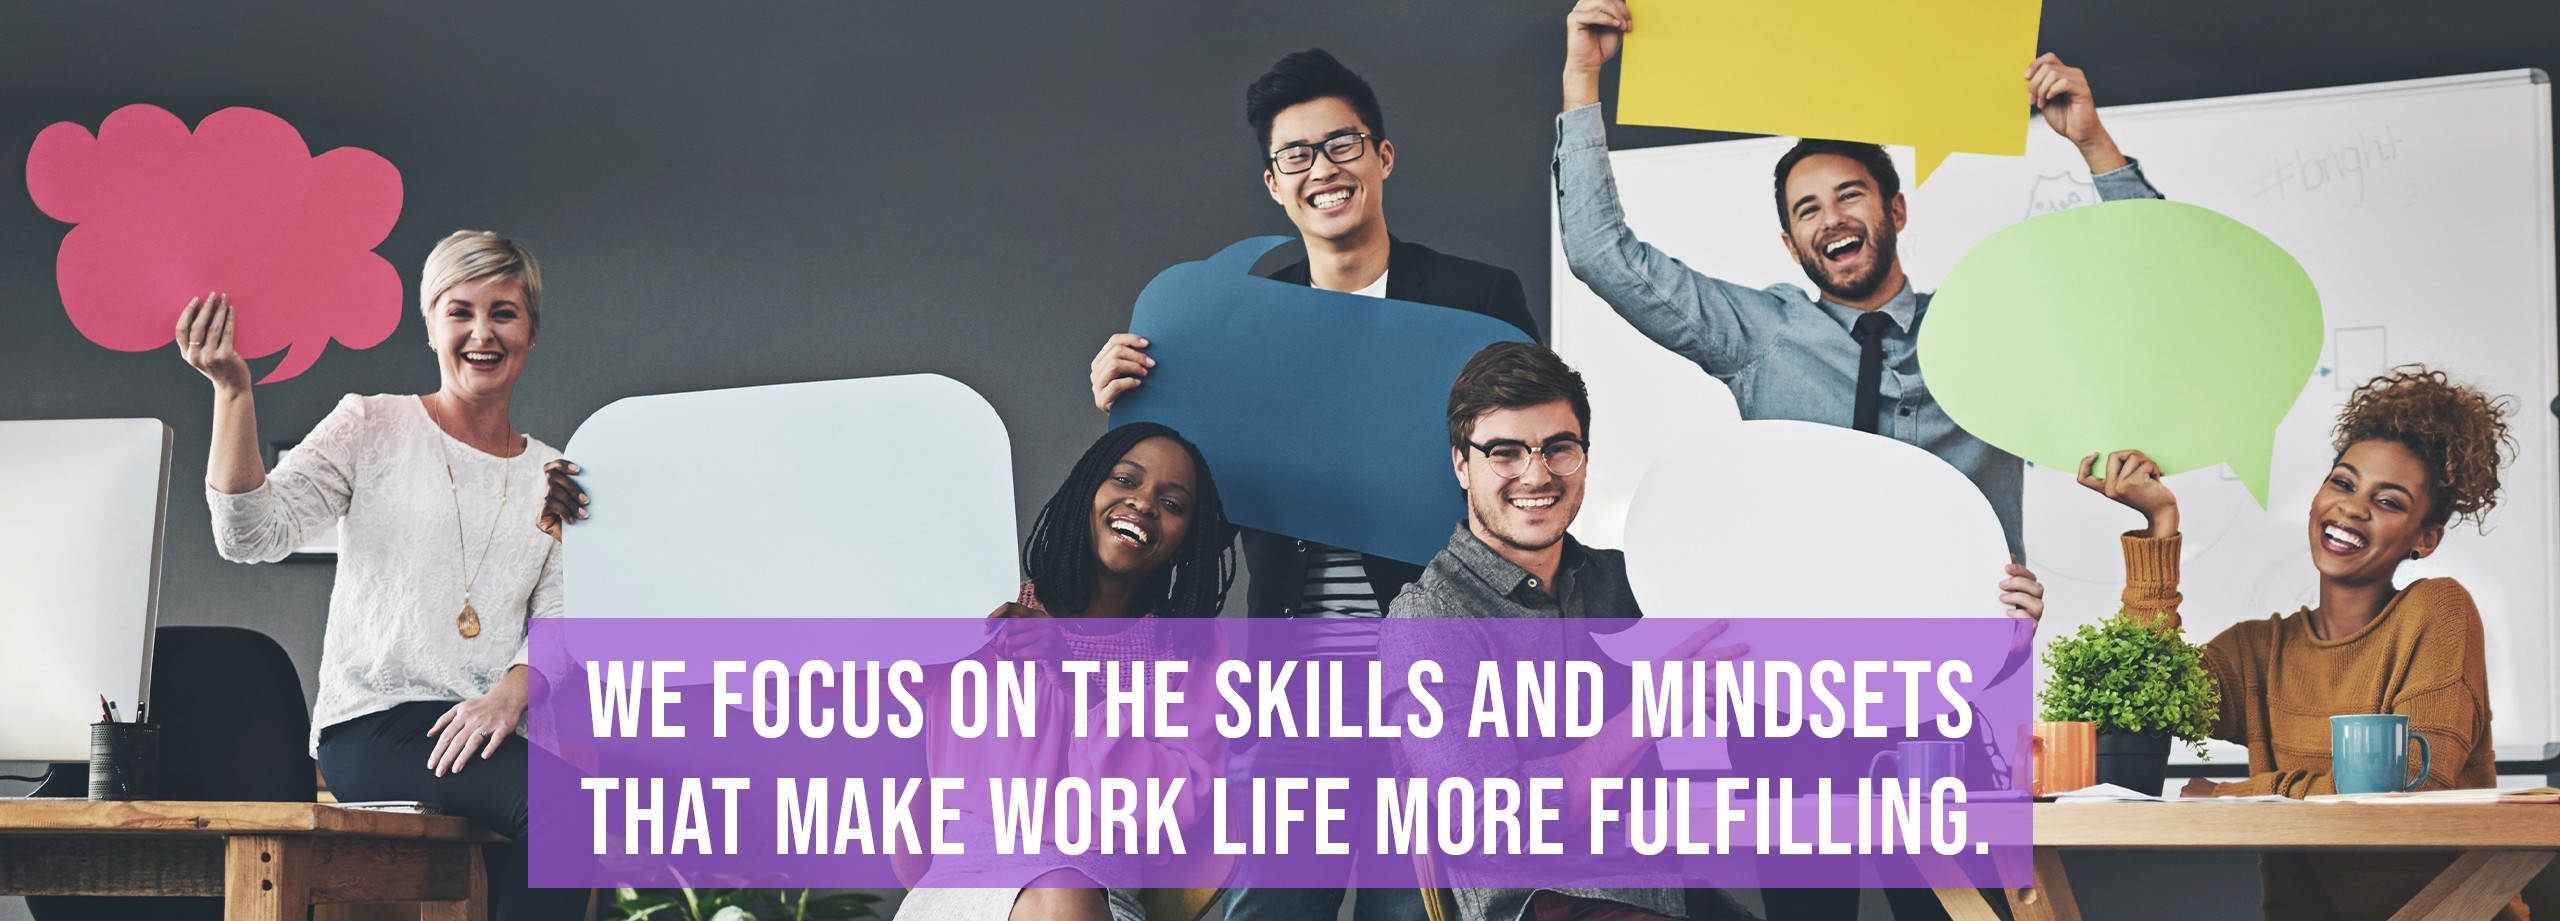 "Photo of a group of professional adults holding speech bubbles with the tagline ""We Focus On The Skills And Mindsets That Make Life More Fulfilling."""